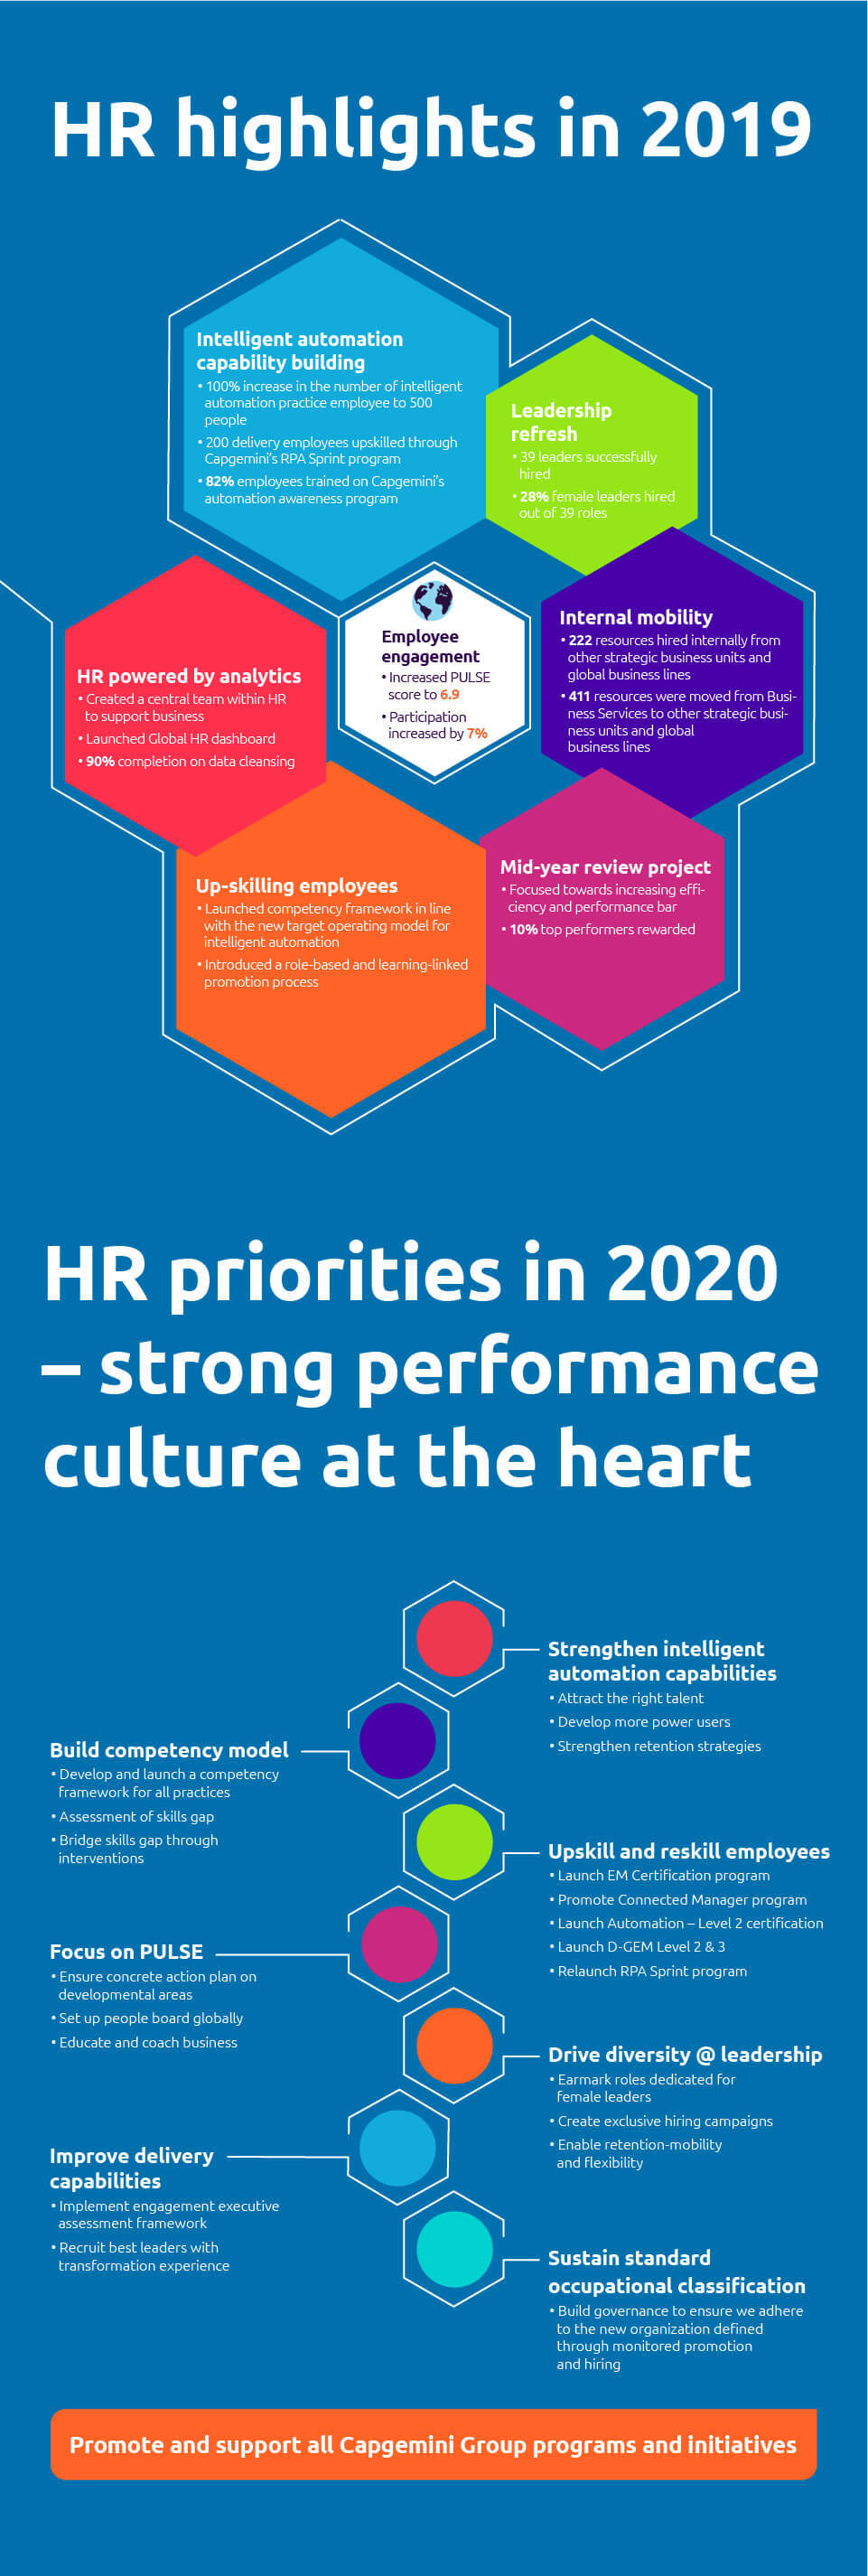 Business Services HR – highlights and priorities